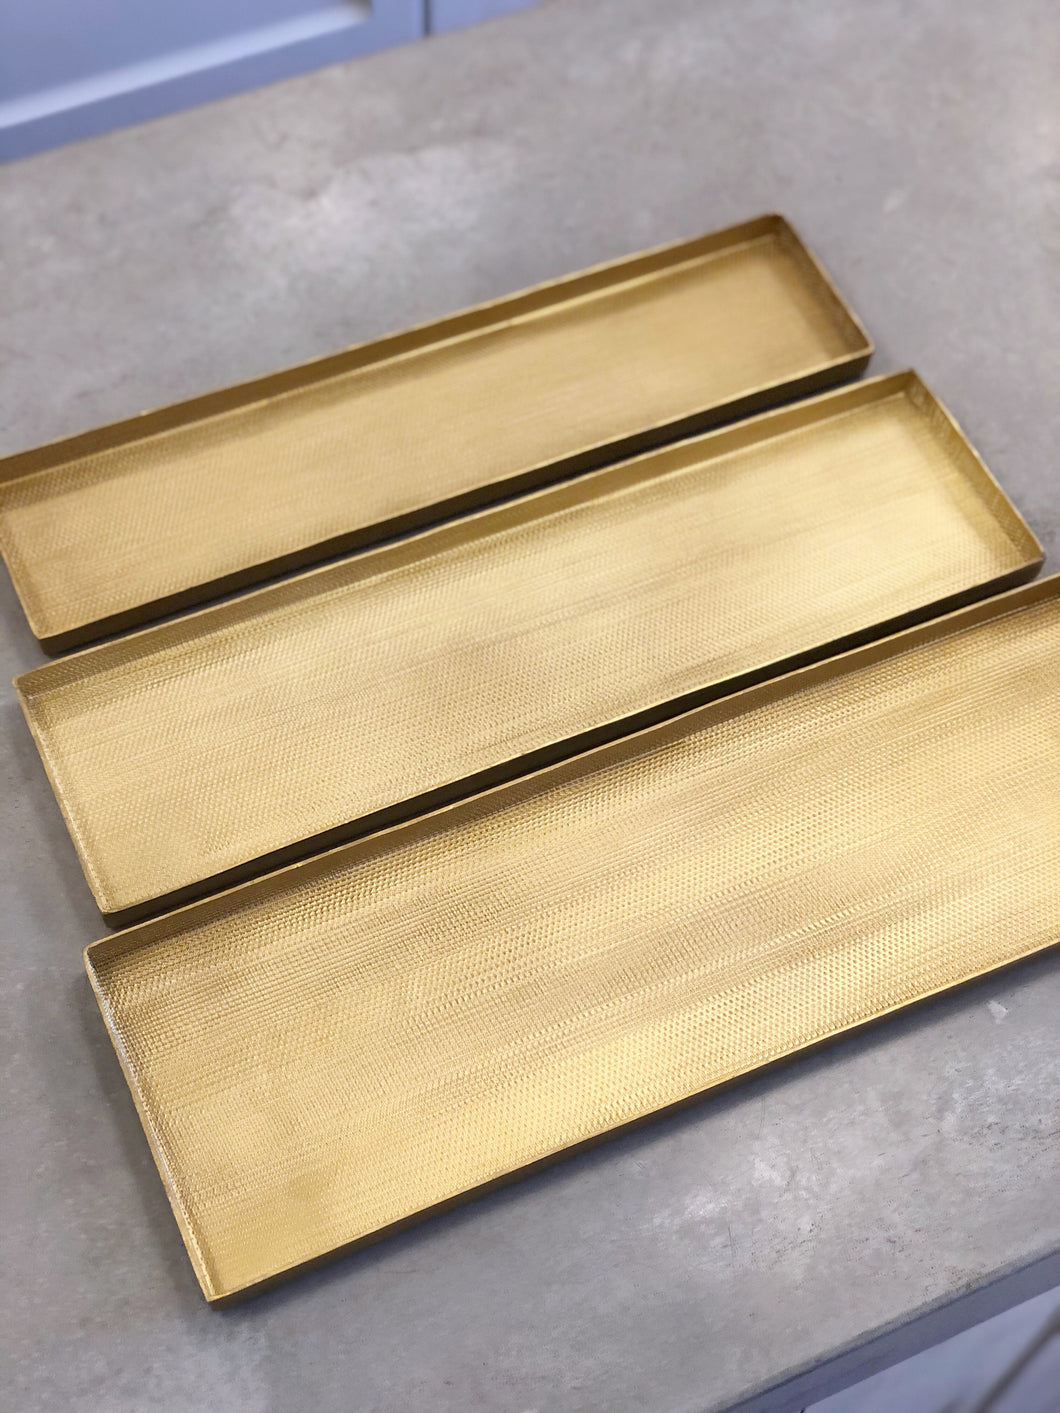 Gold Textured Metal Tray